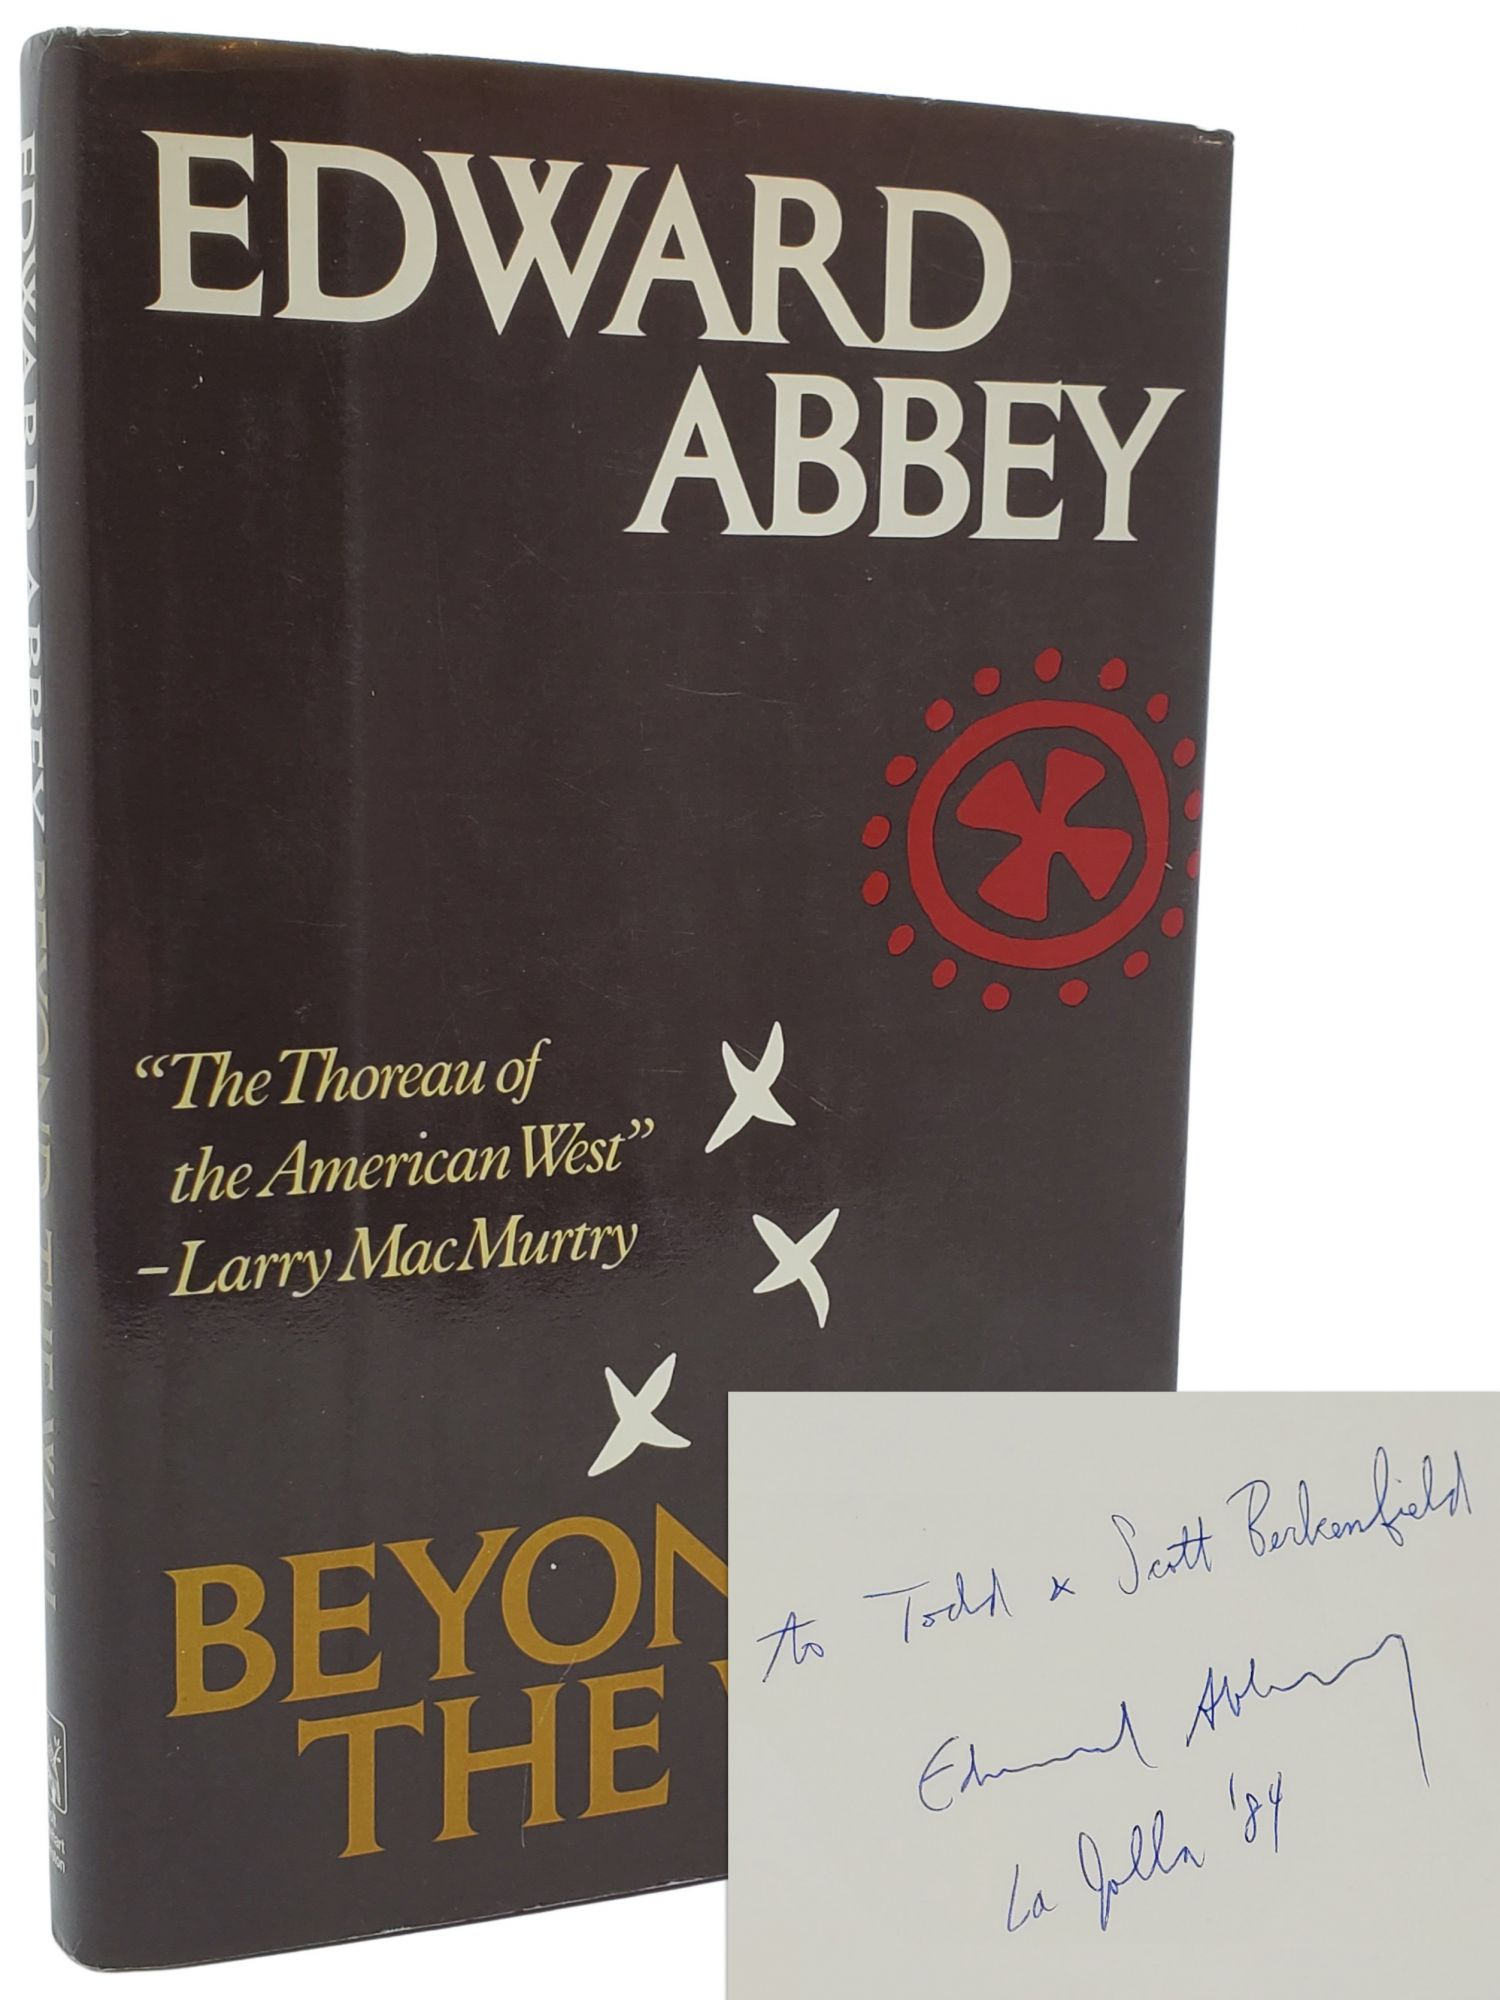 BEYOND THE WALL. Essays from the Outside. Edward Abbey.